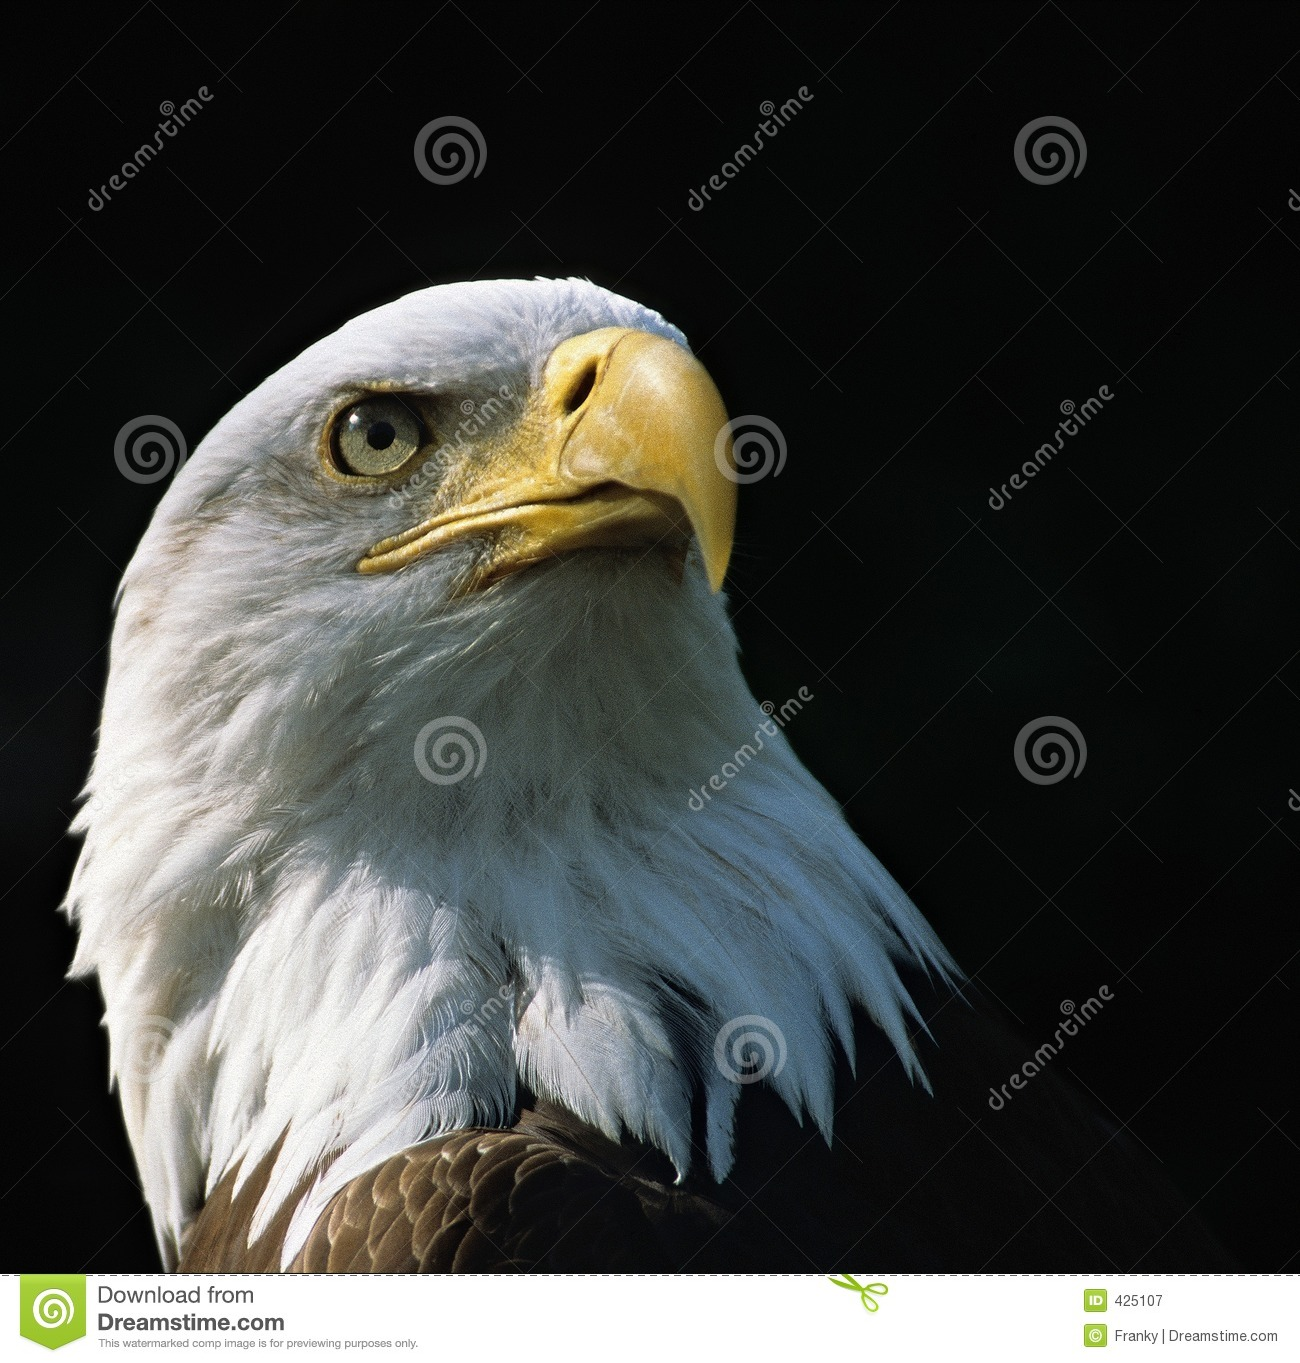 Bald Eagle Royalty Free Stock Photography - Image: 425107